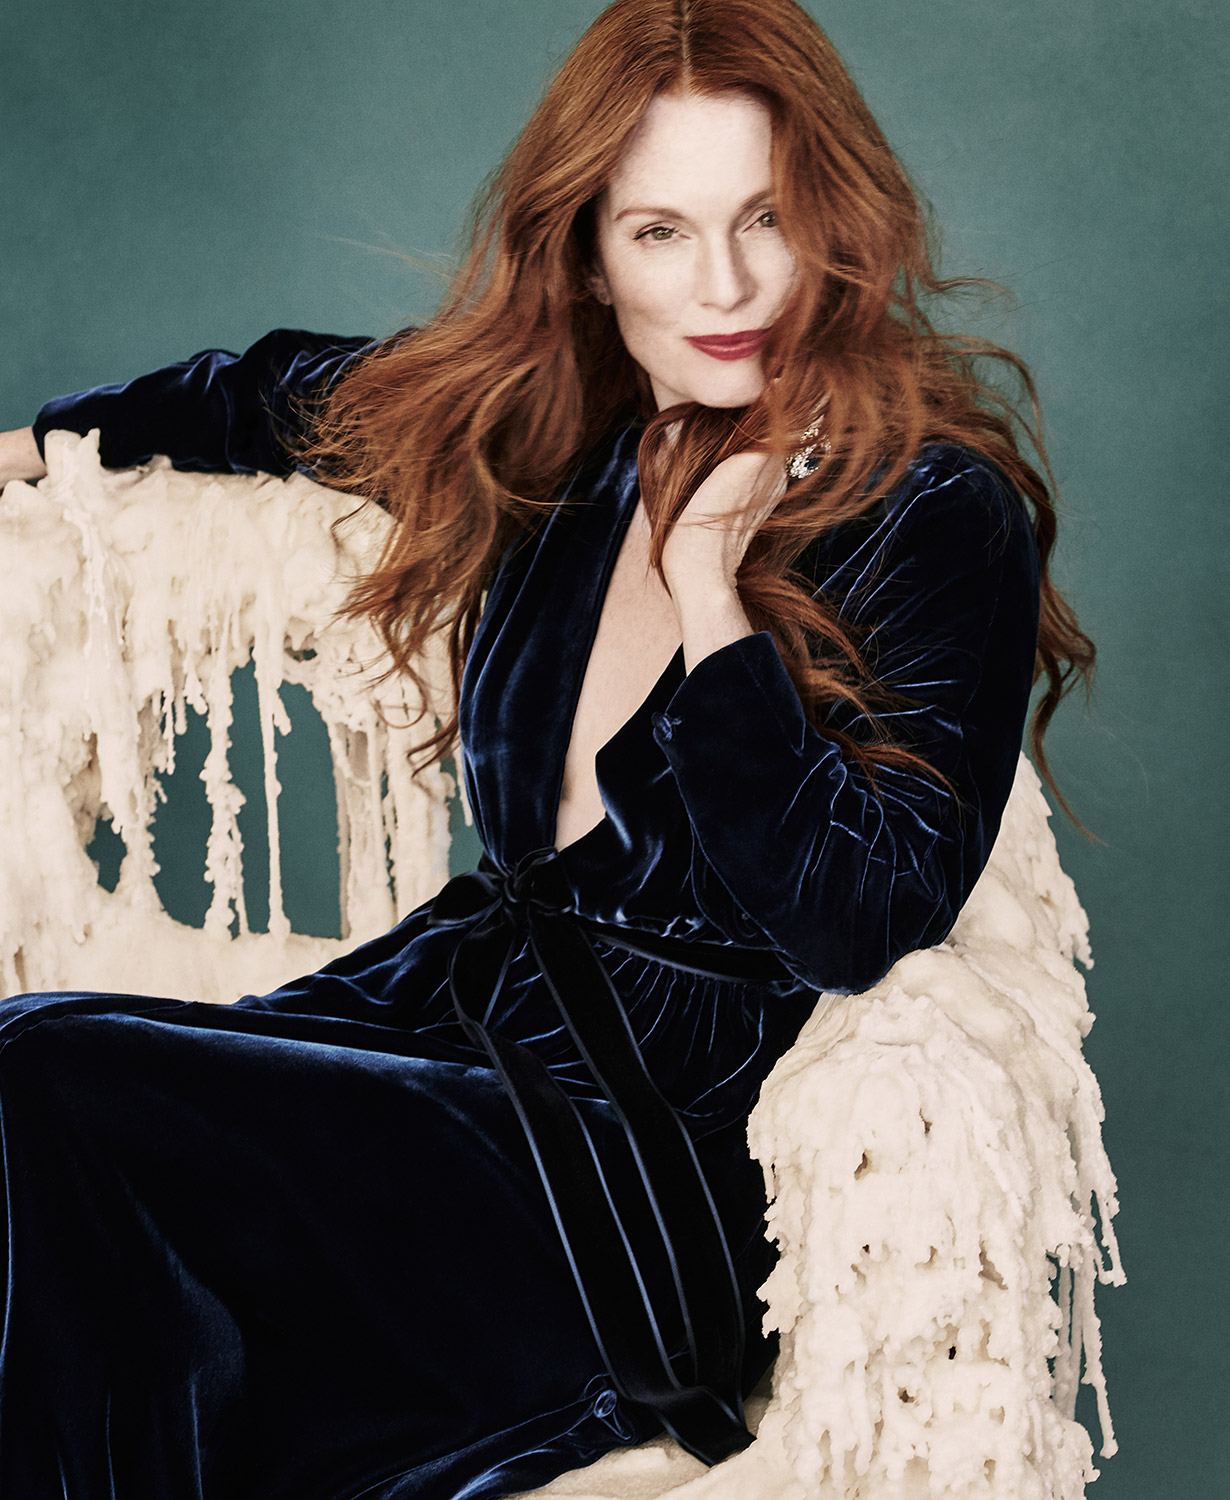 04-JULIANNE-MOORE.jpg